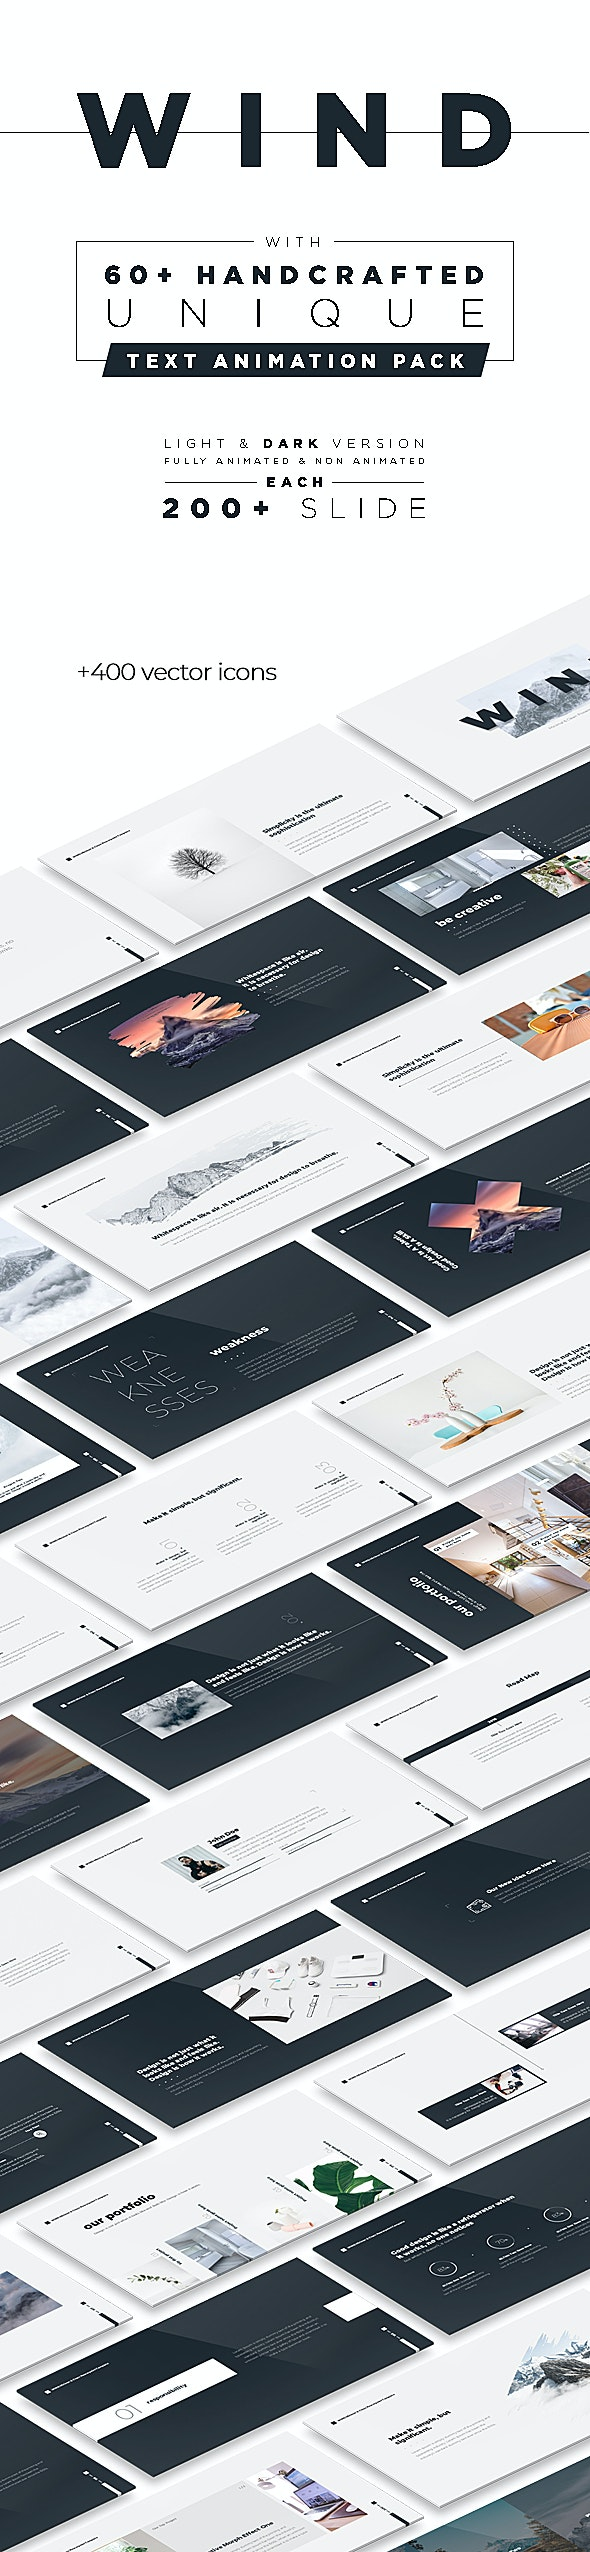 Wind Minimal & Clean Powerpoint With Text Animation Pack - PowerPoint Templates Presentation Templates